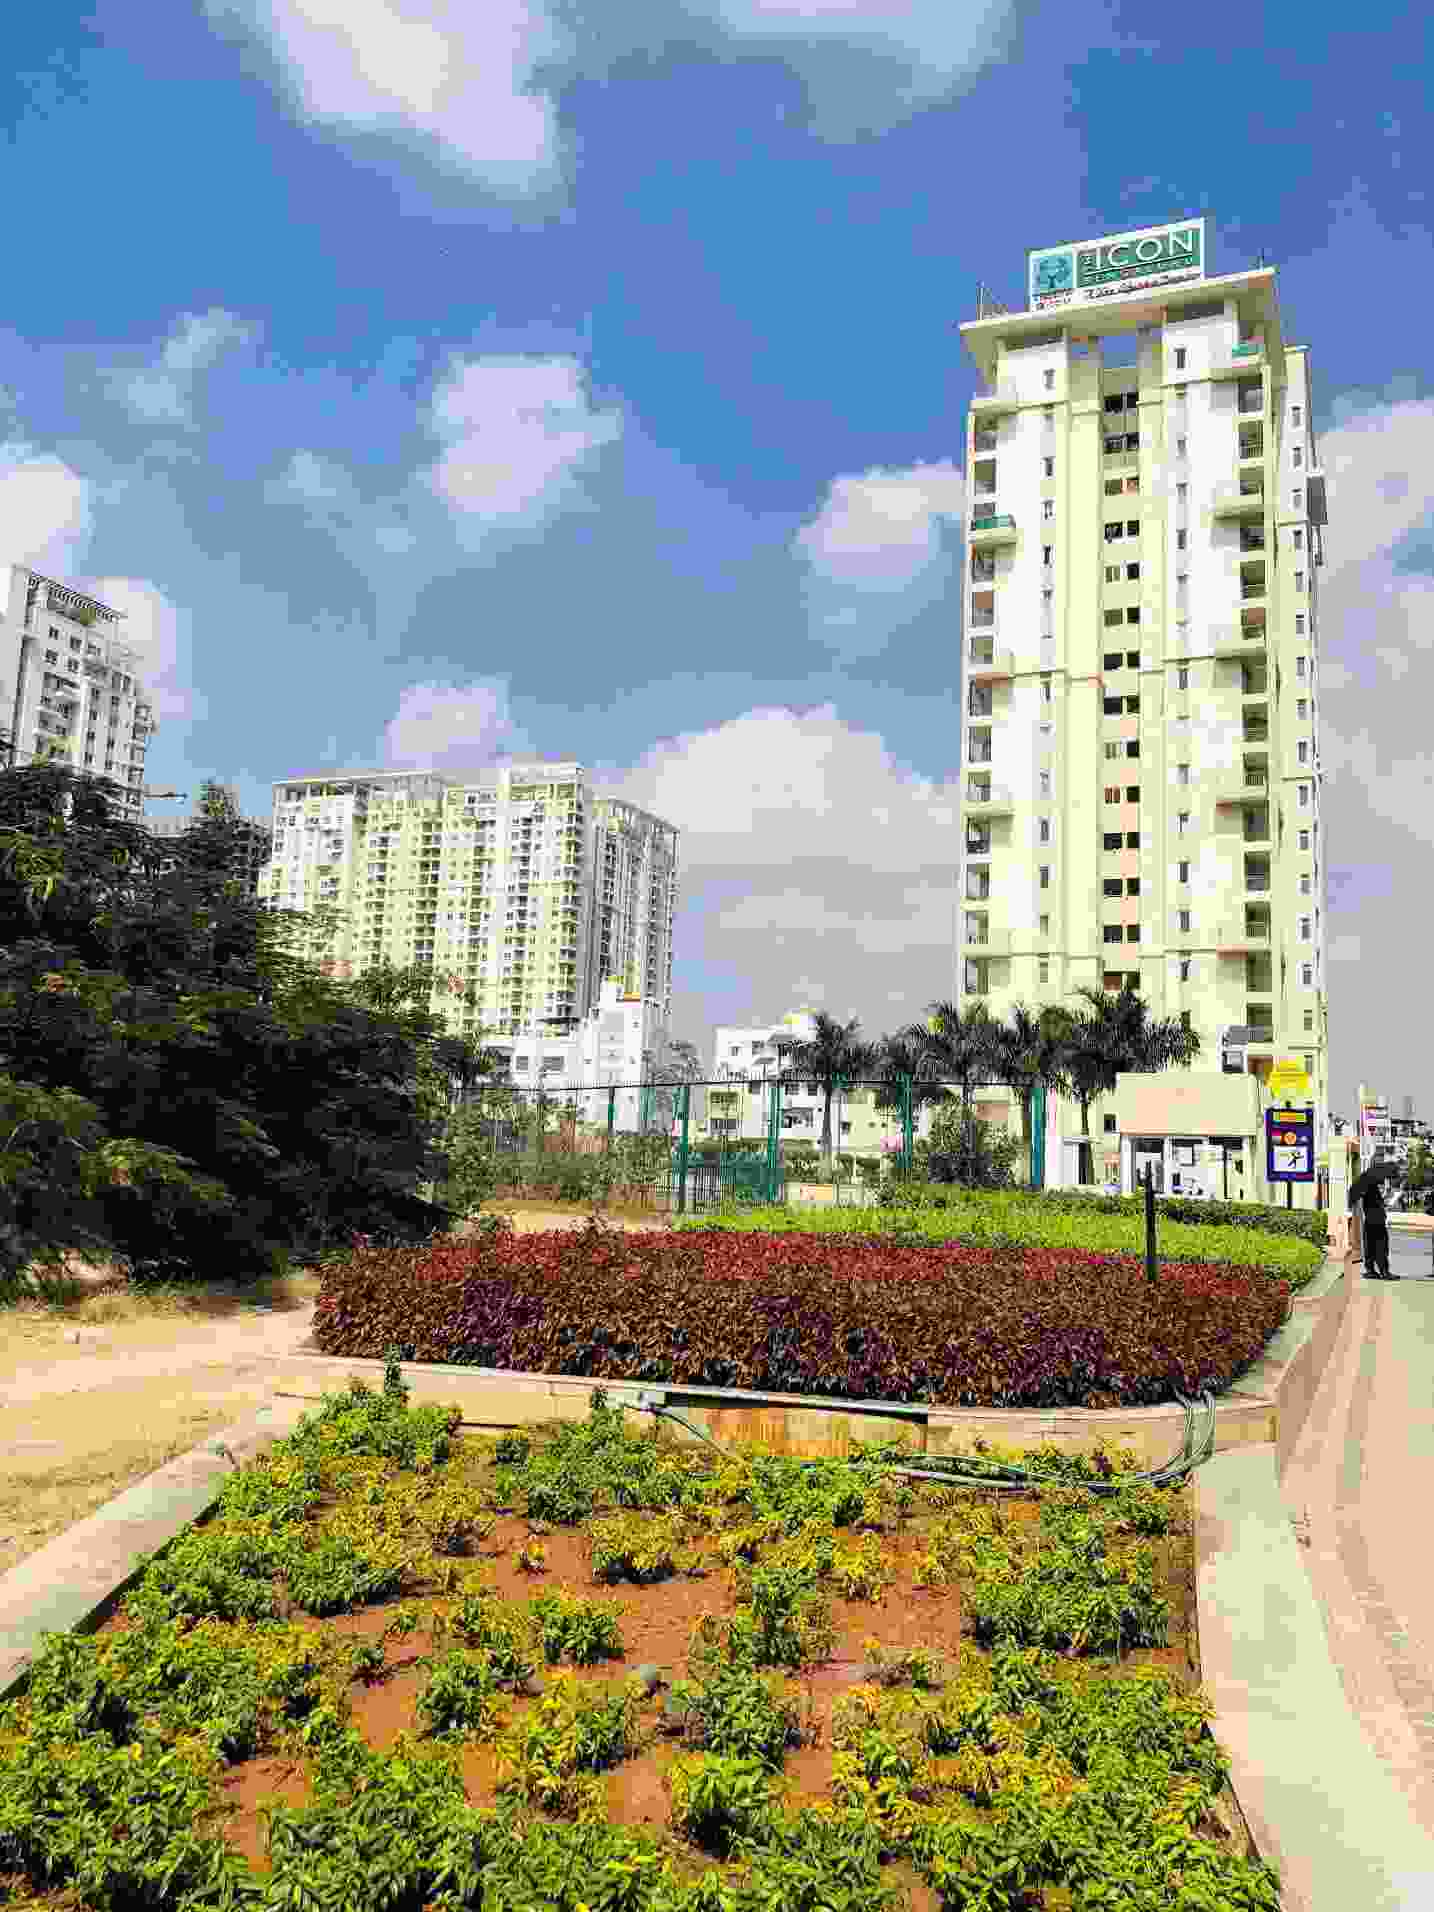 Importance of amenities in our residential society